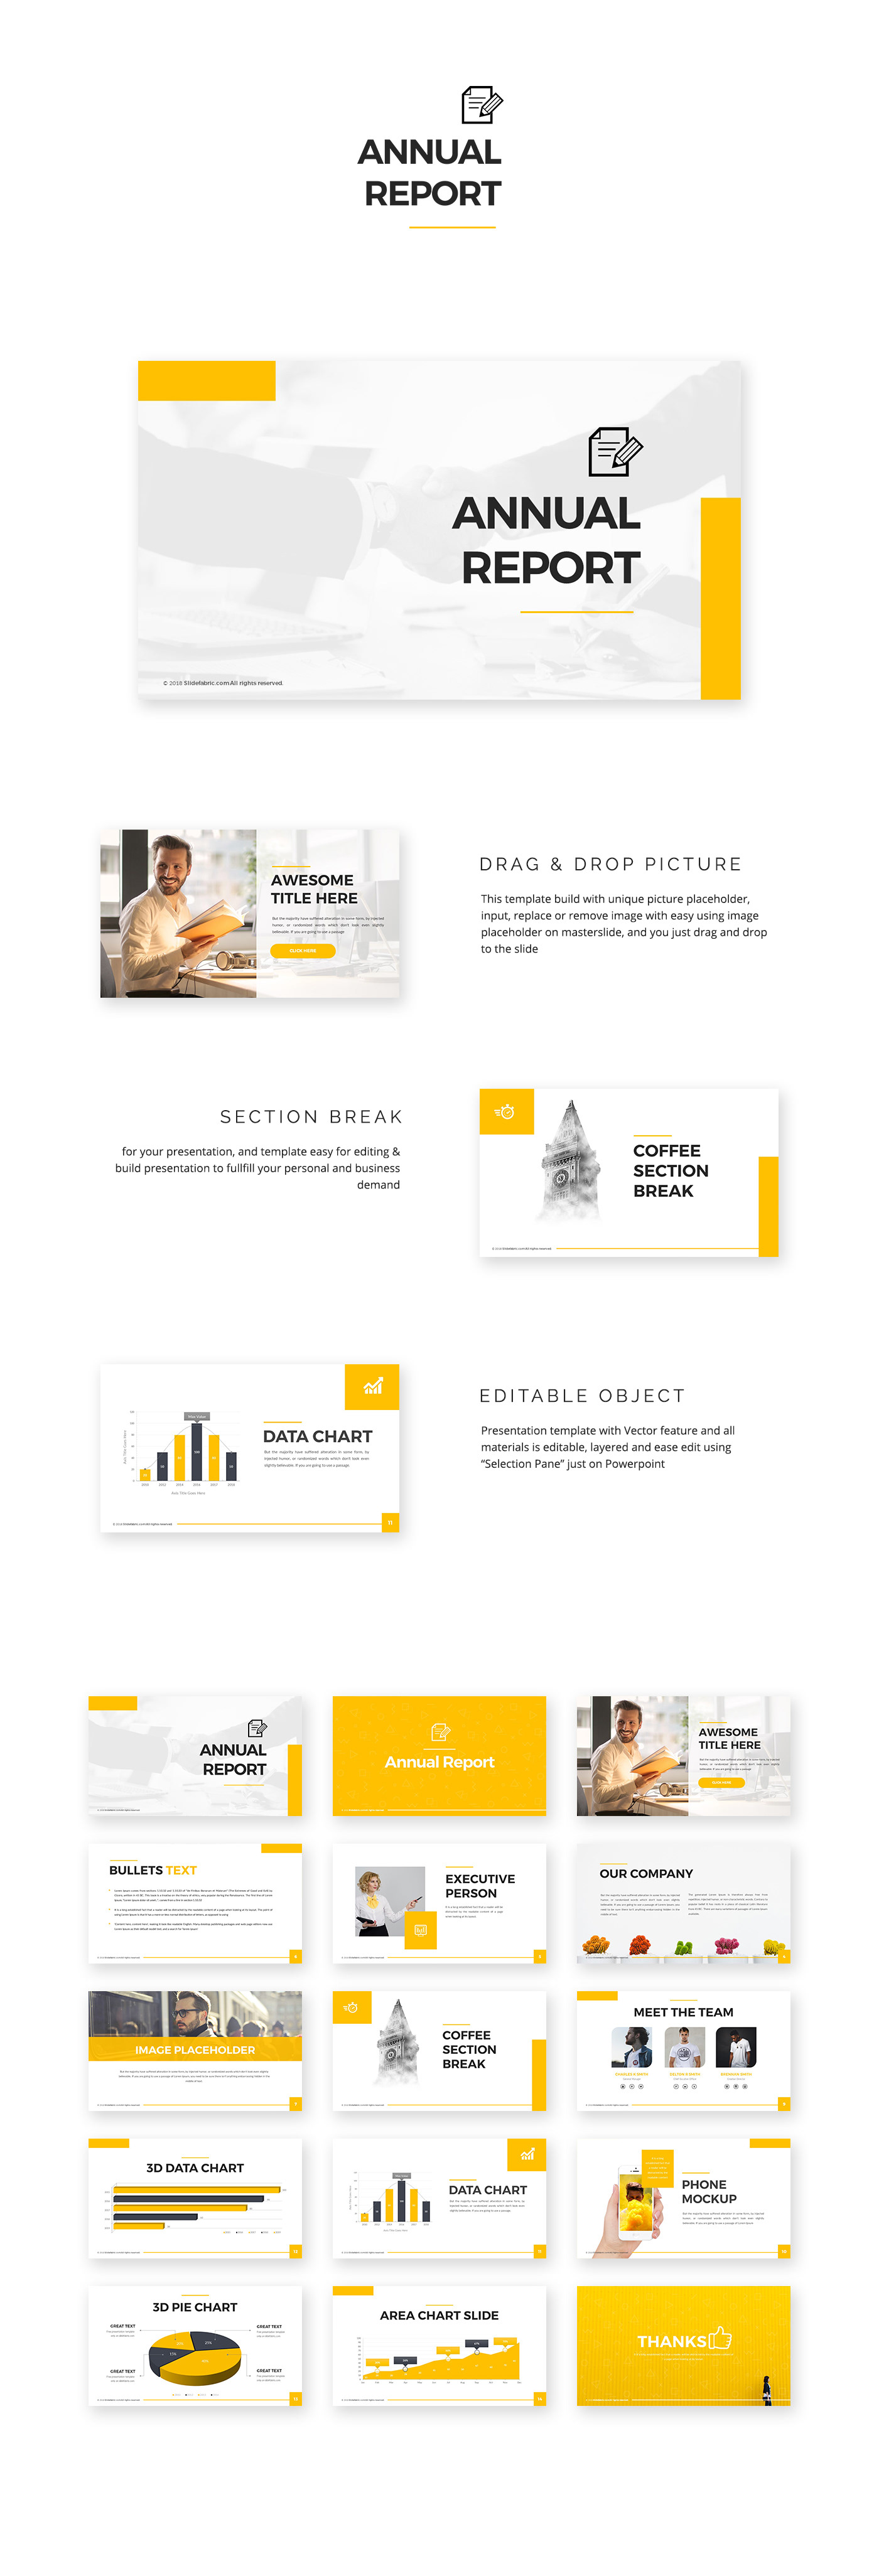 FREE POWERPOINT TEMPLATES | Annual Report on Behance